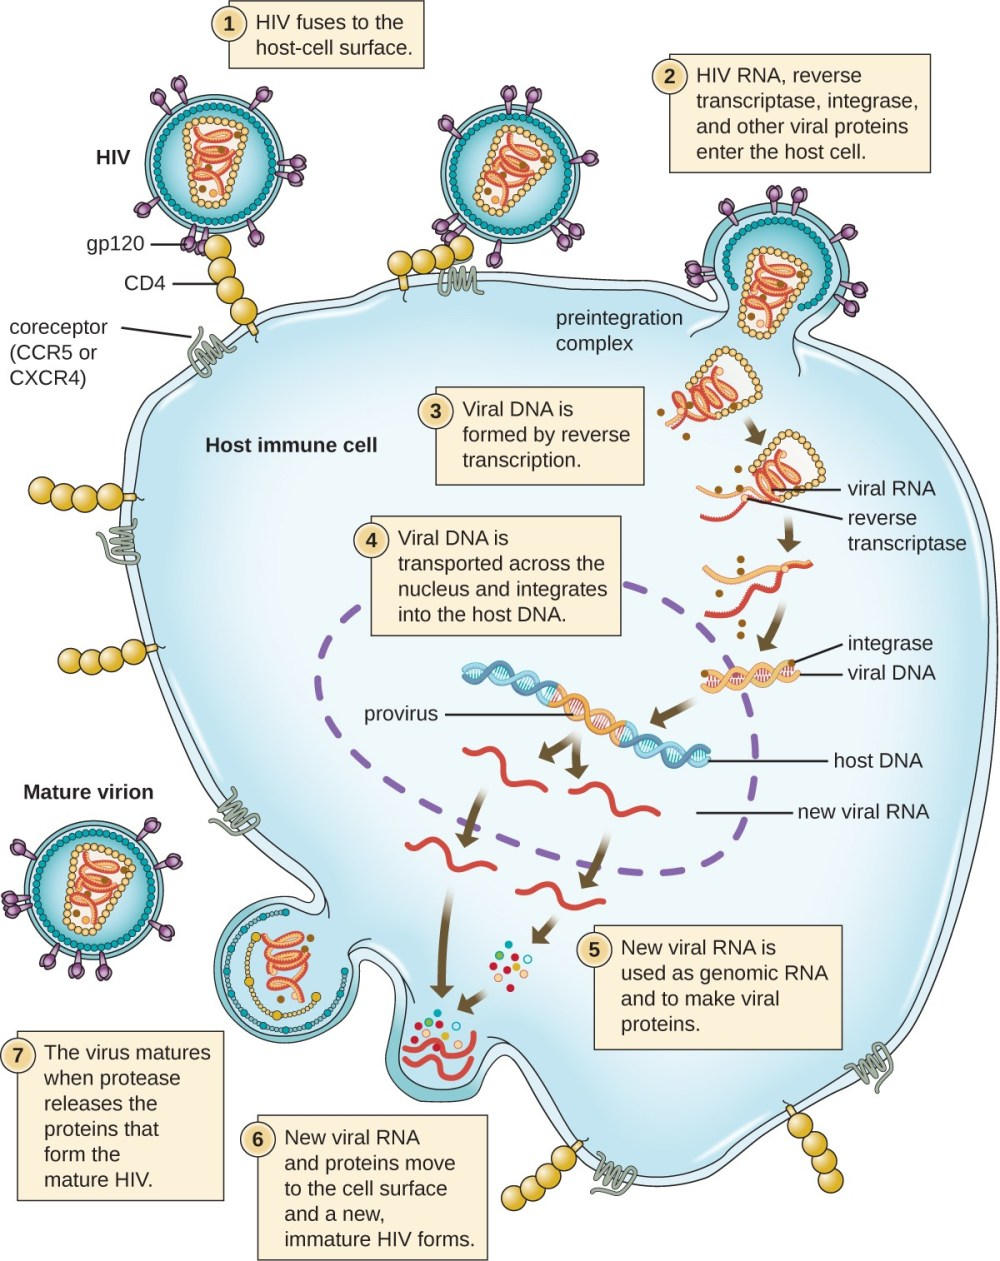 medium resolution of the hiv viral cycle step 1 the hiv fuses to the host cell